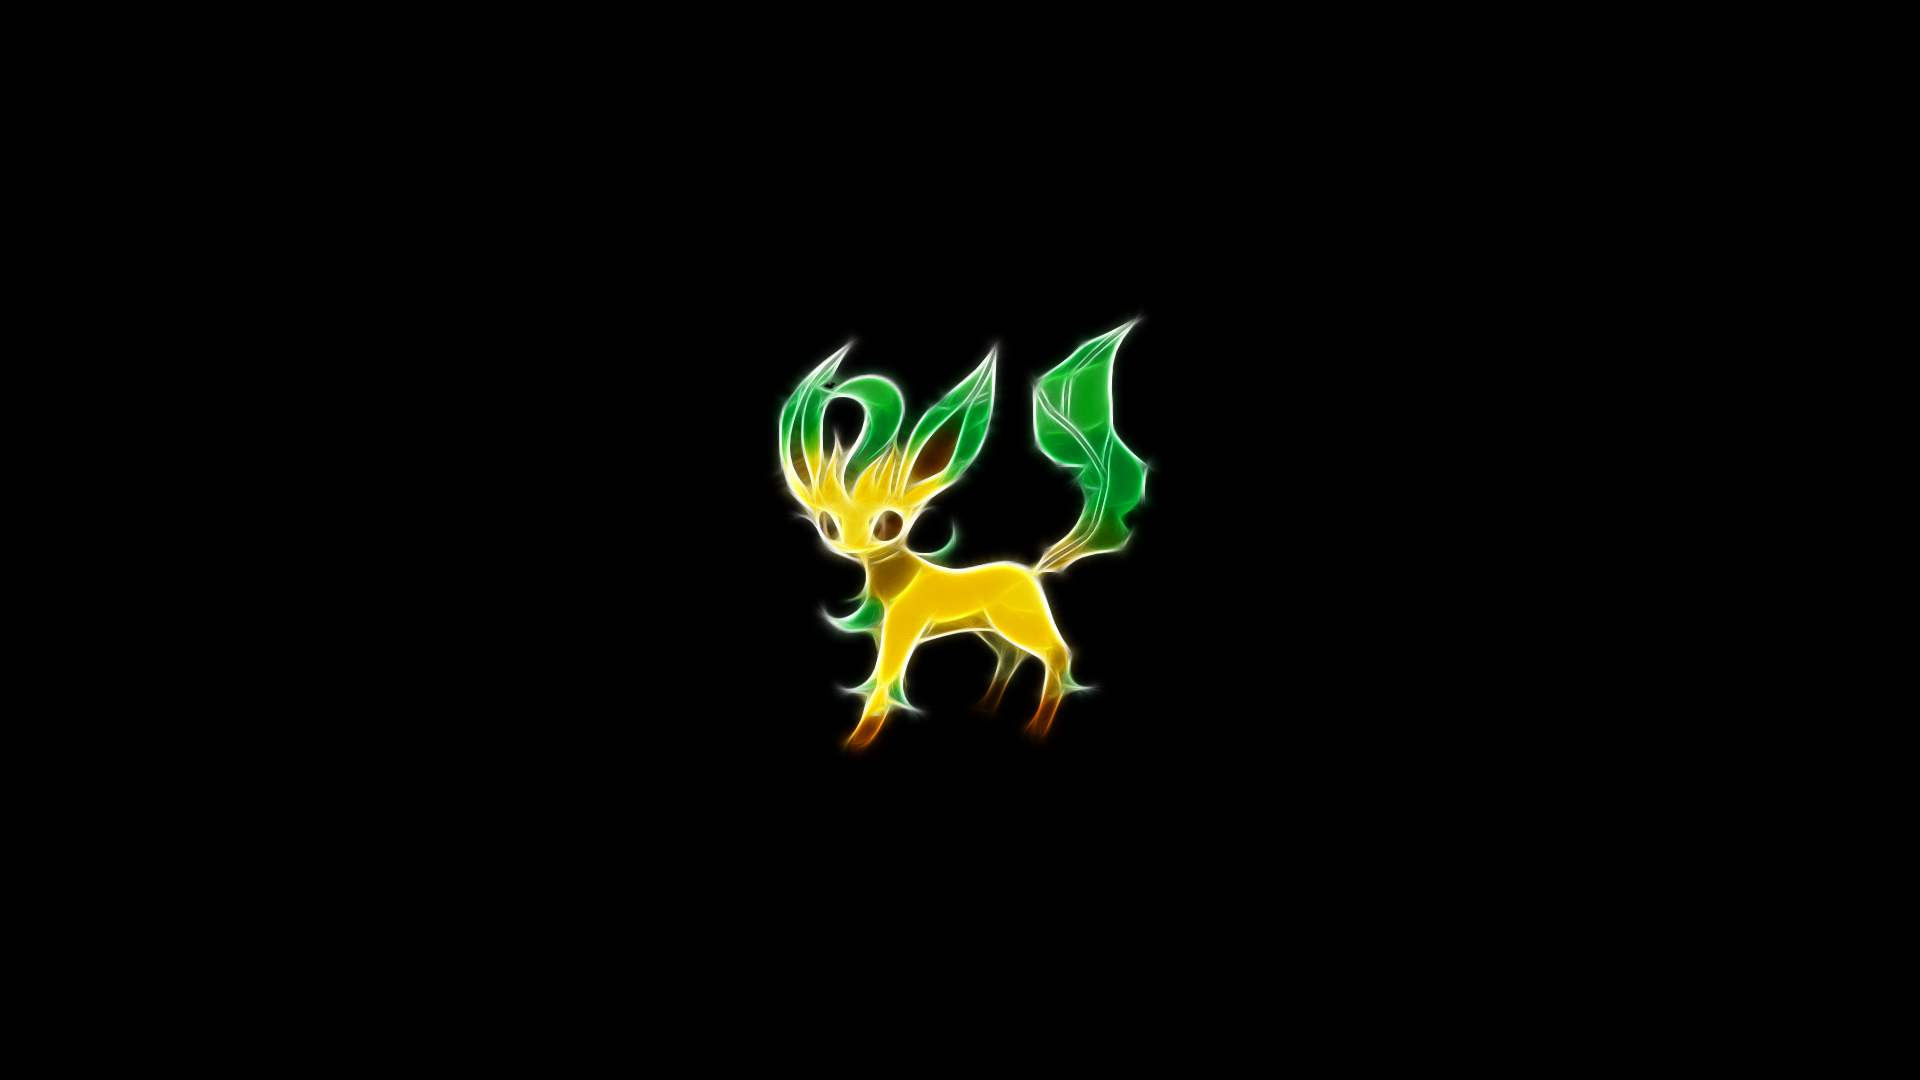 Wallpapers For > Leafeon Wallpapers